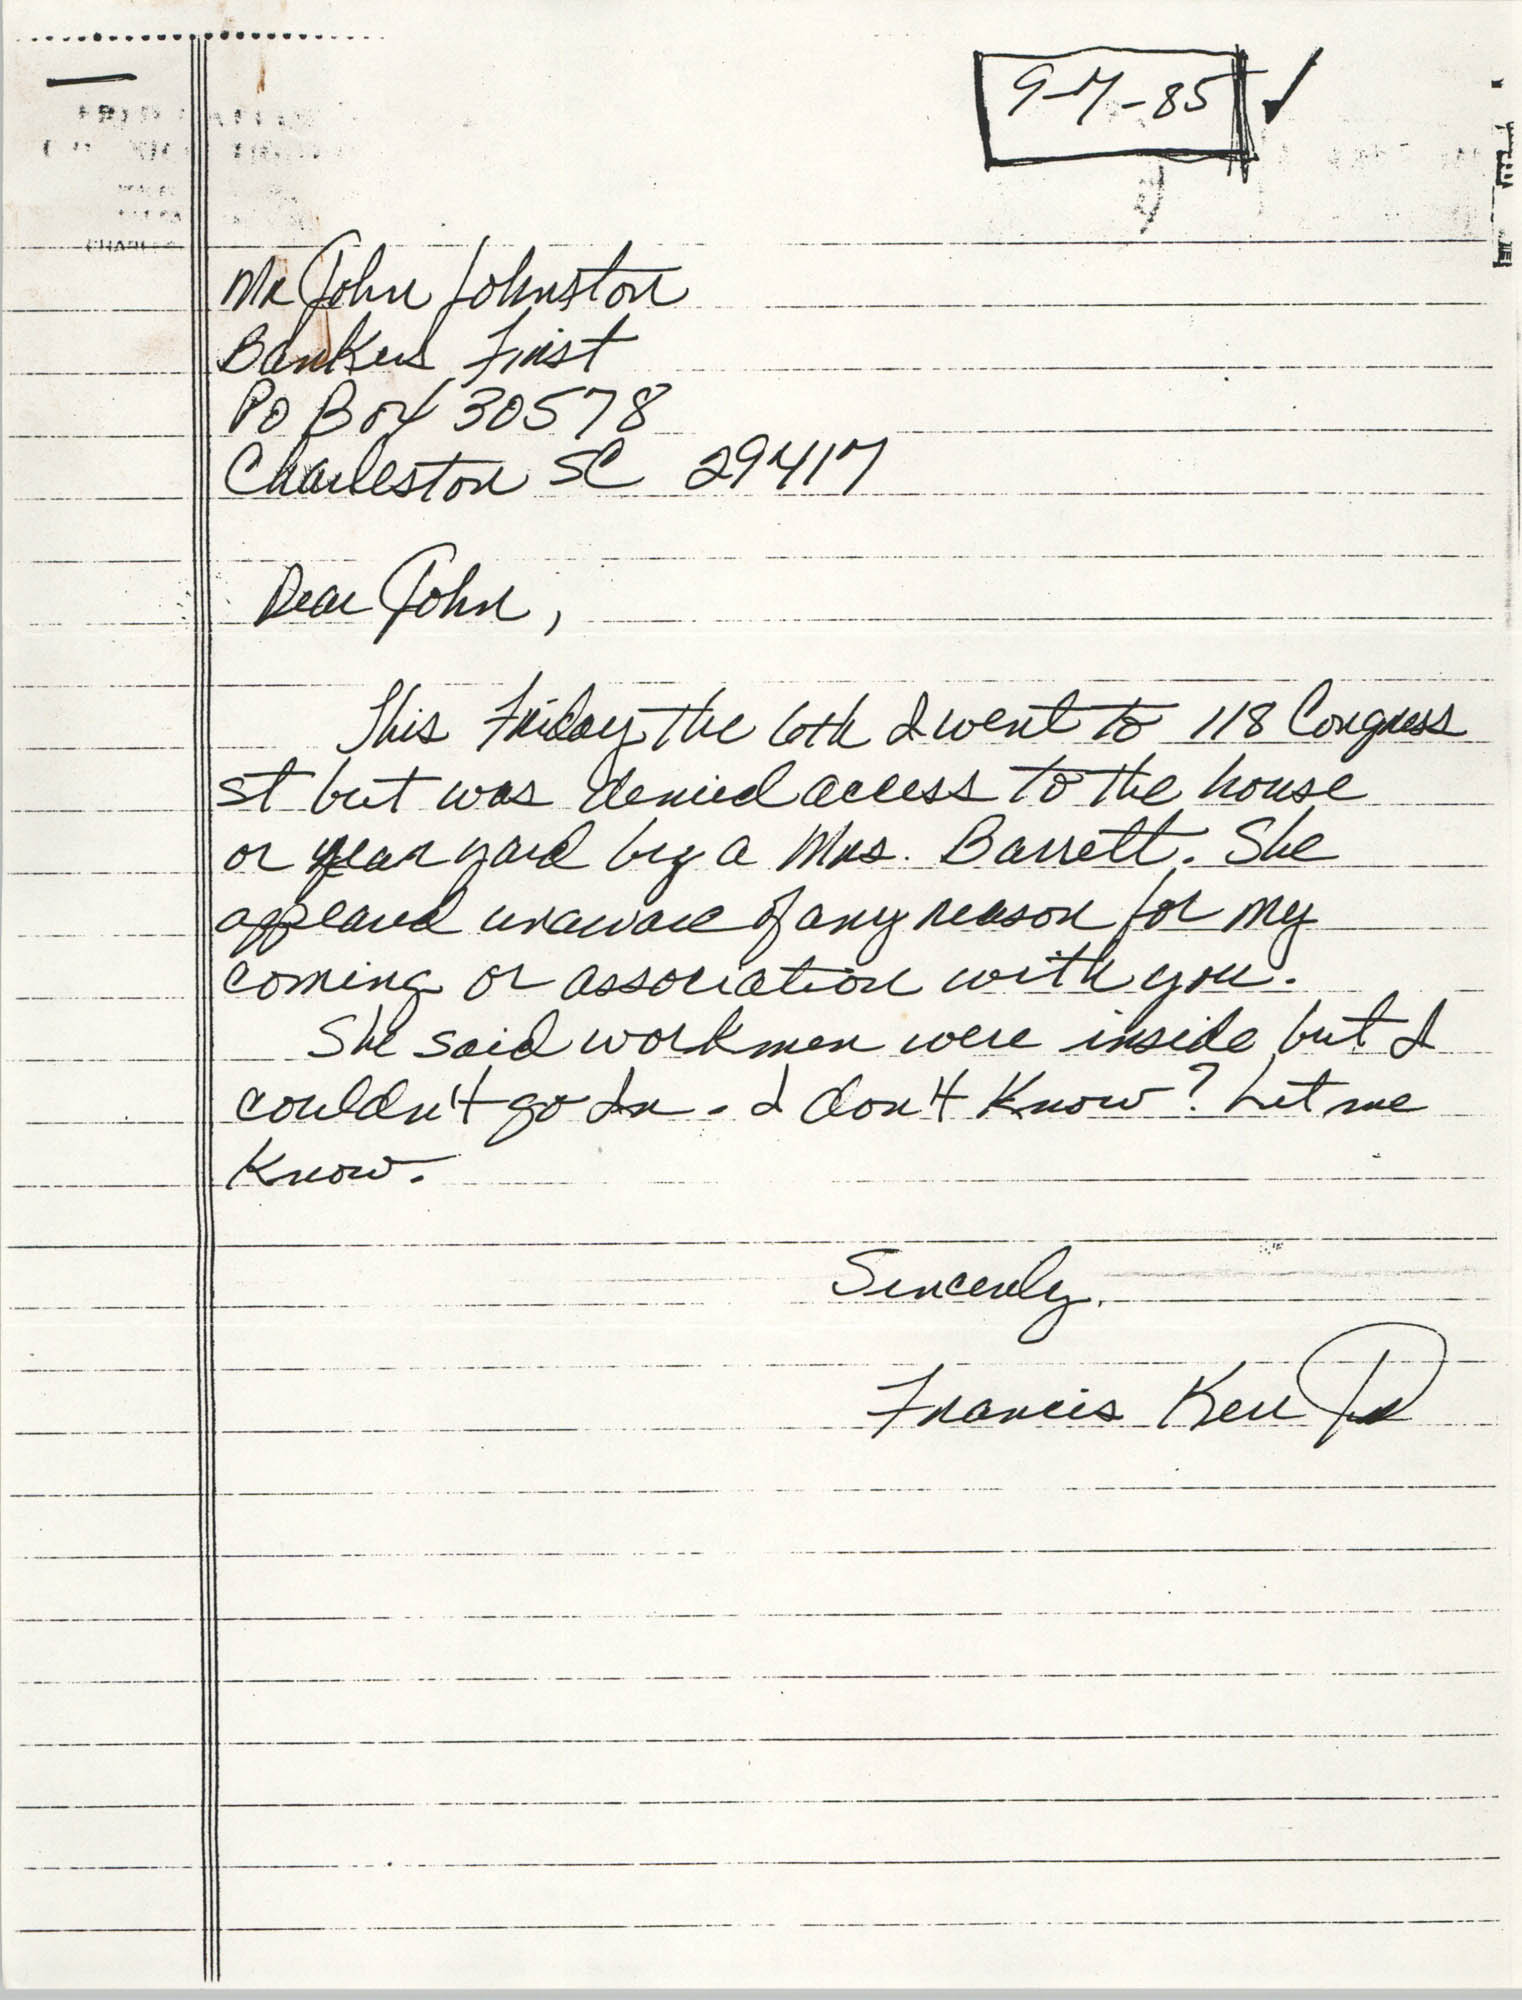 Handwritten letter from Francis Kell D. to John Johnston, September 7, 1985